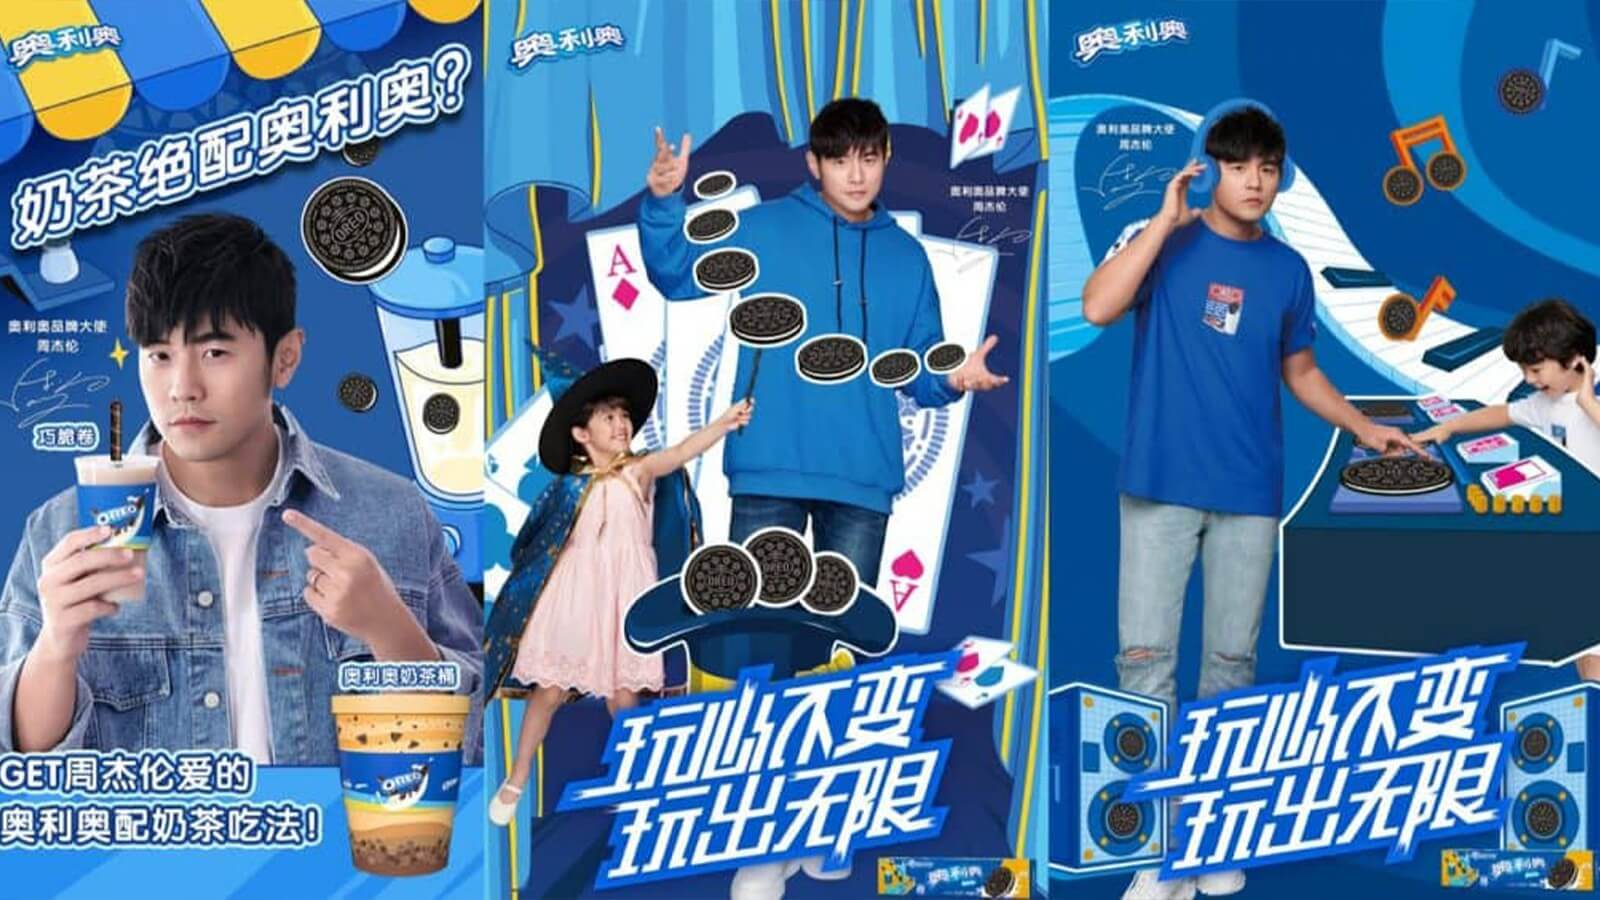 Oreo entering the Chinese market, a strategic move for brands.